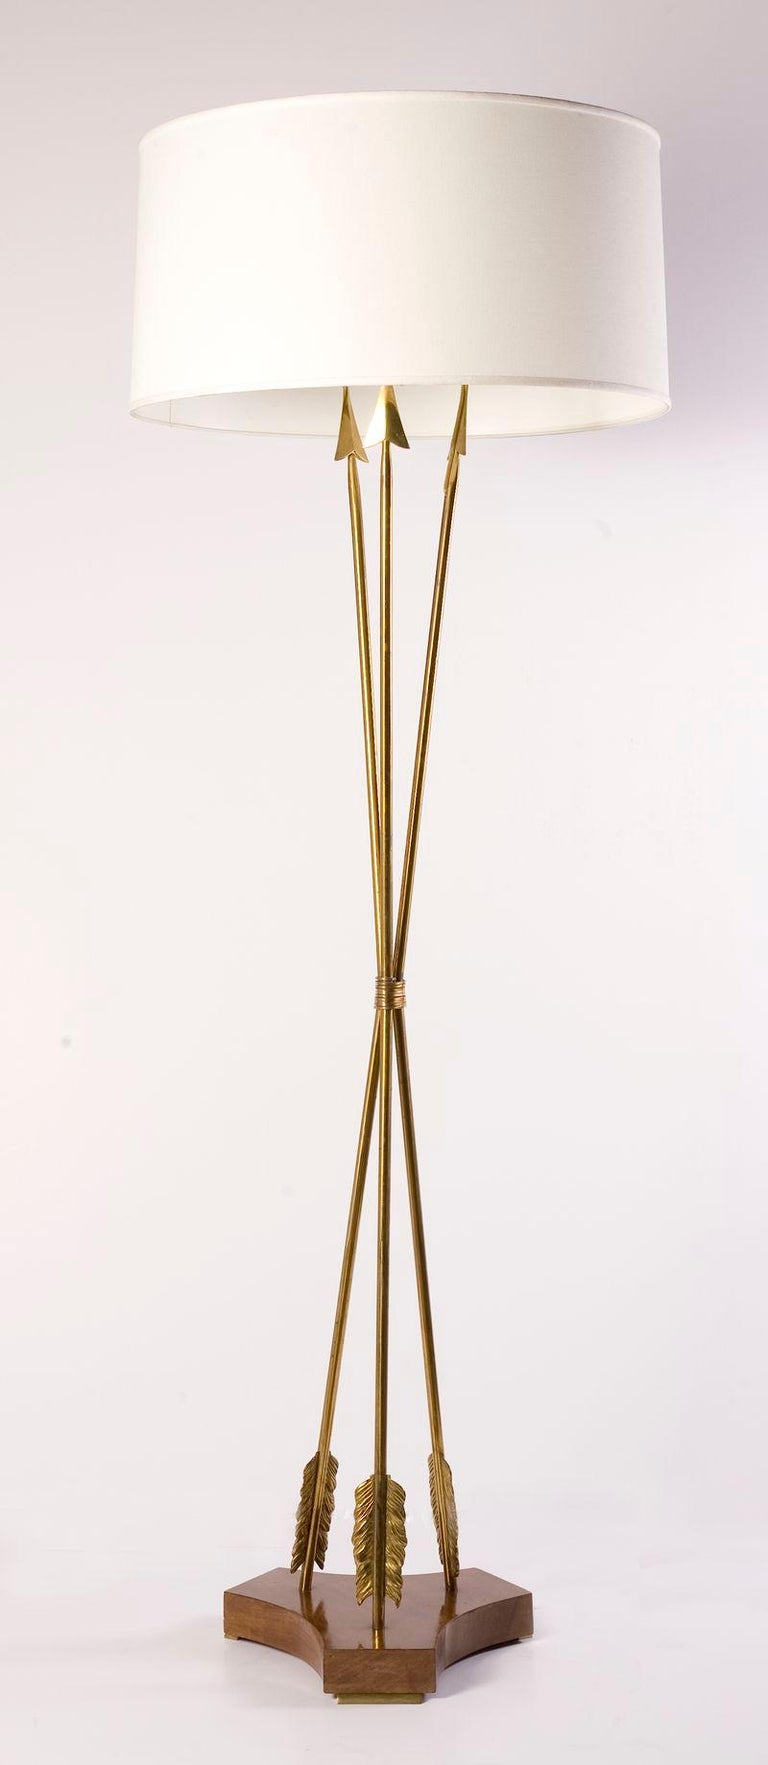 French Mid-Century Floor Lamp, France, C. 1950 For Sale